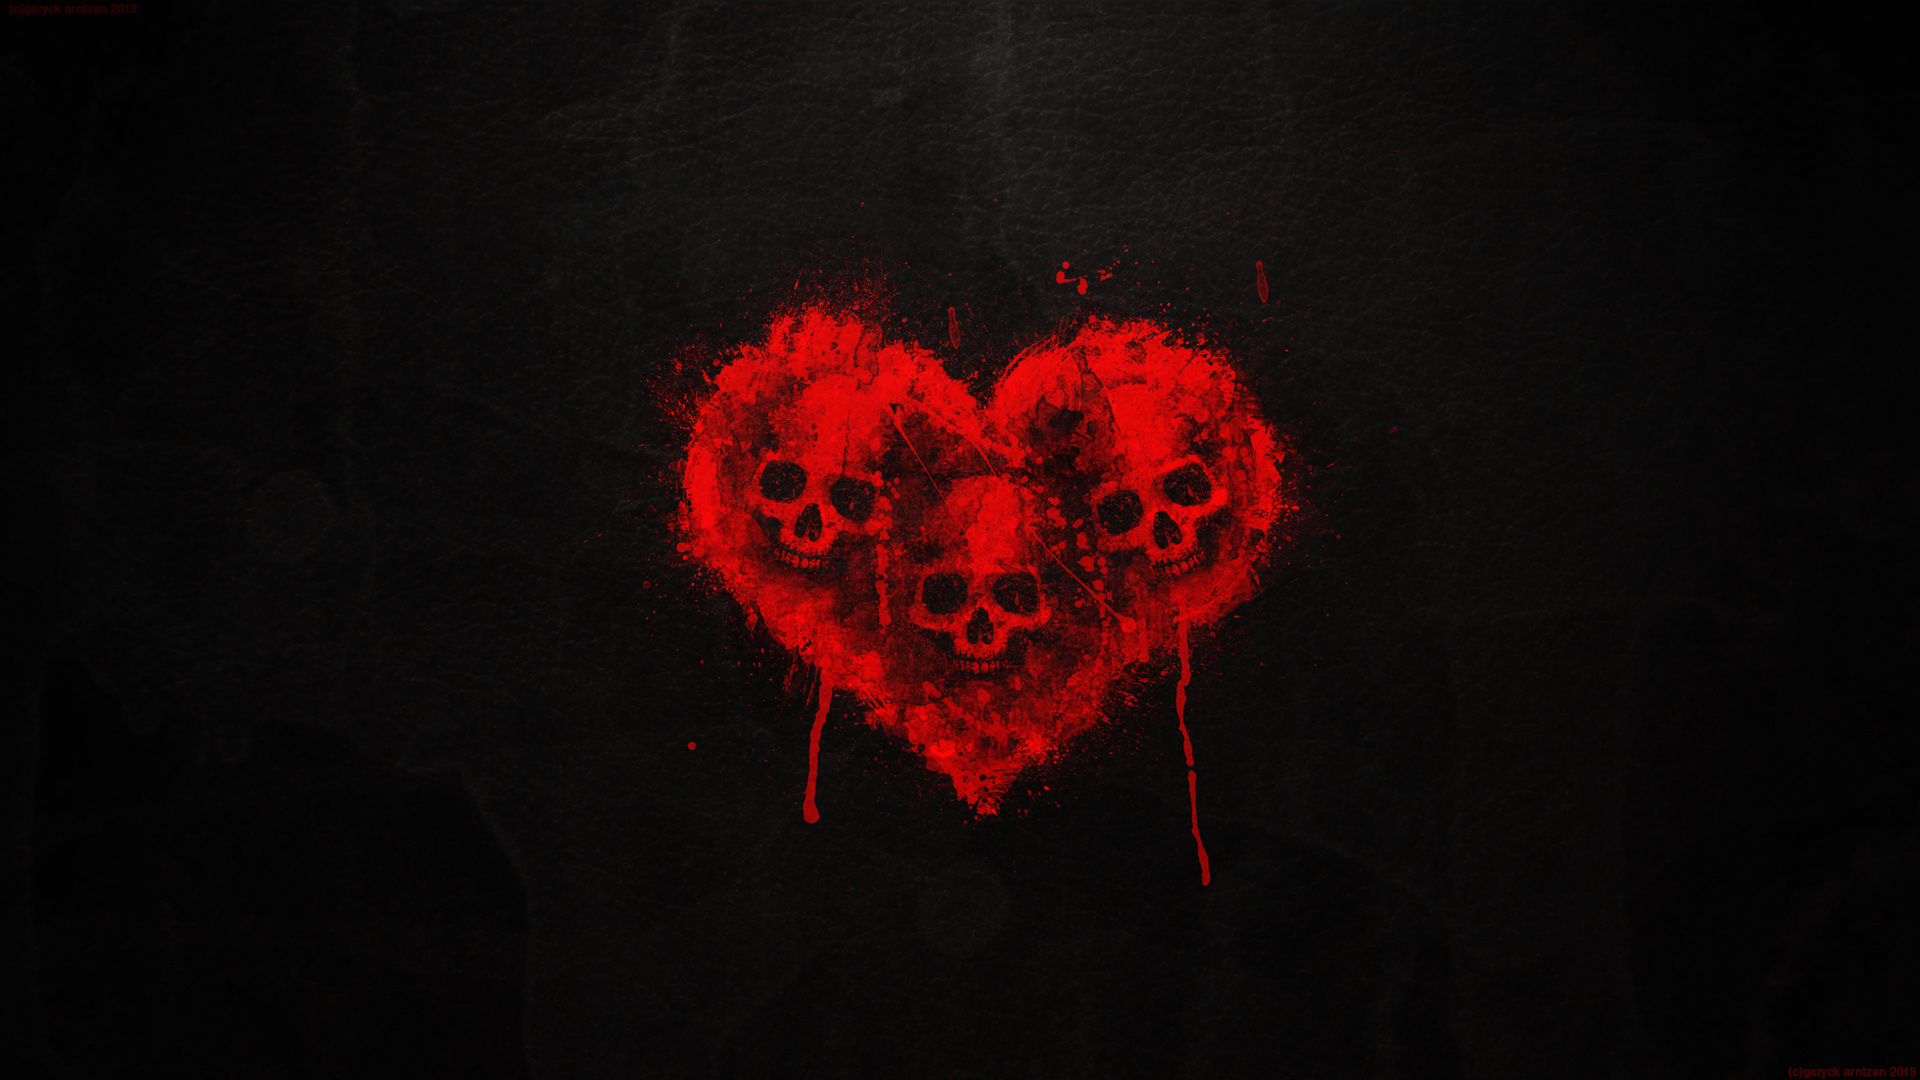 Love Hand Blood Wallpaper : Blood Skulls wallpaper - 984971